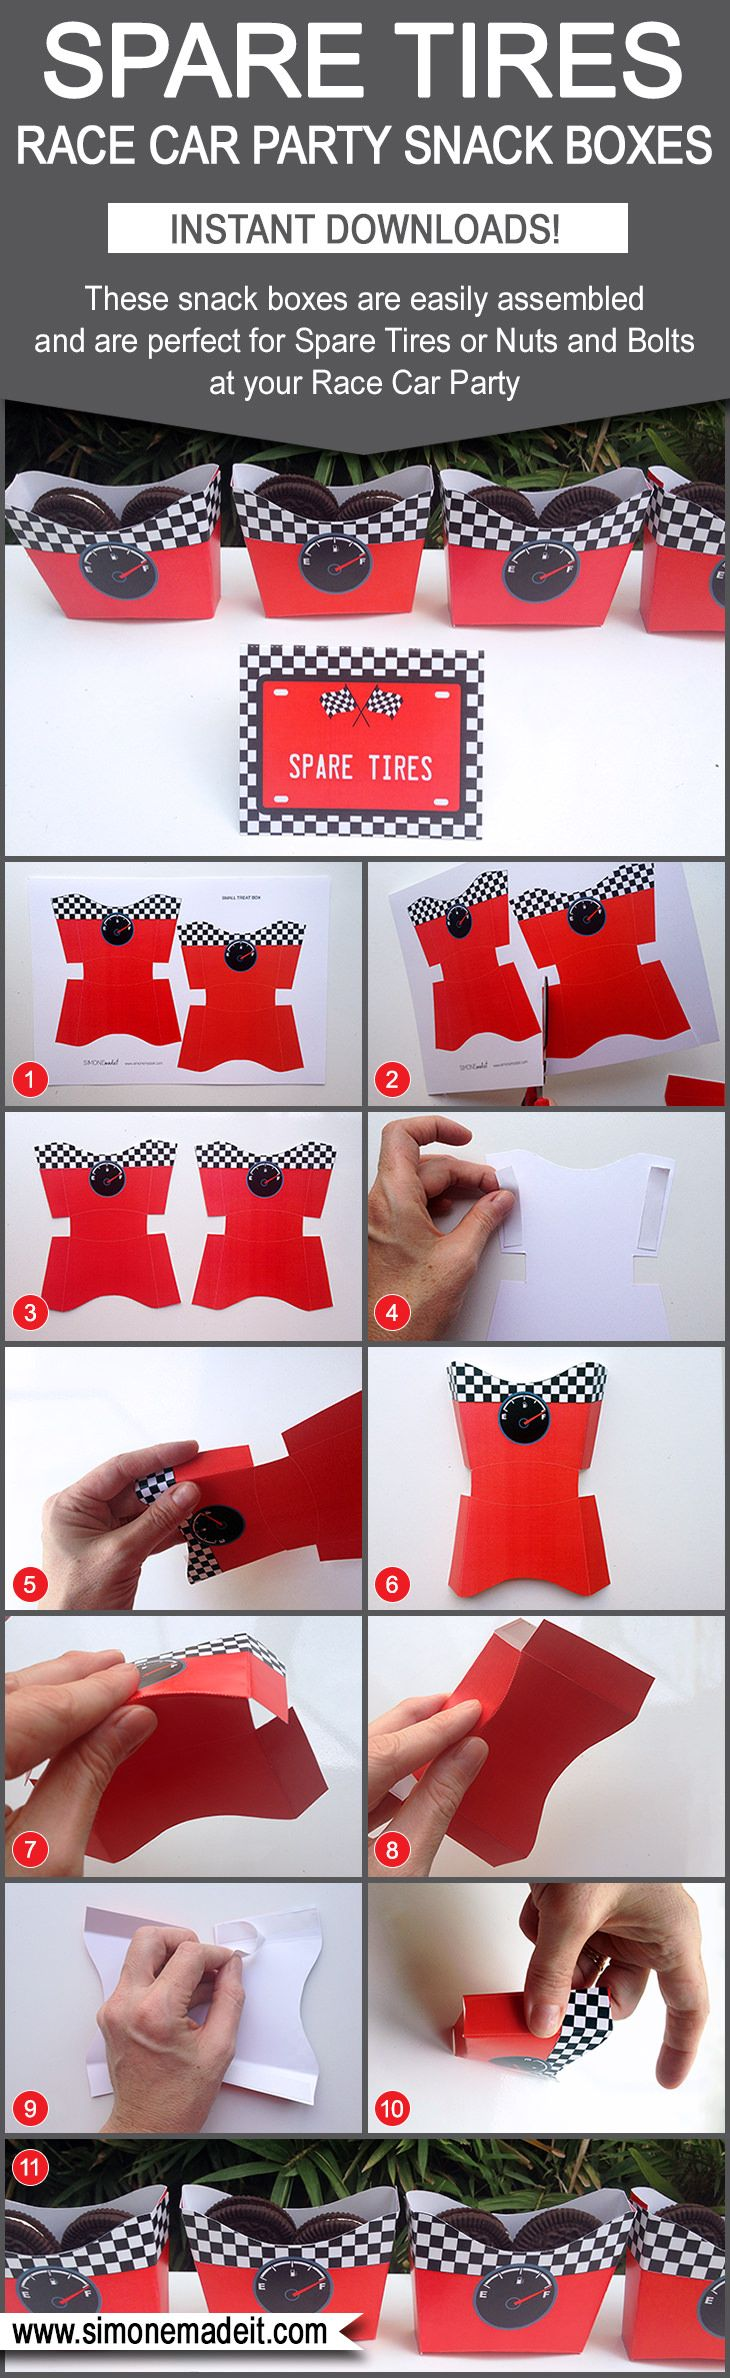 Race Car Party Food Ideas - Spare Tire Snack Boxes & Food Labels   DIY Templates for Race Car Birthday Party Theme